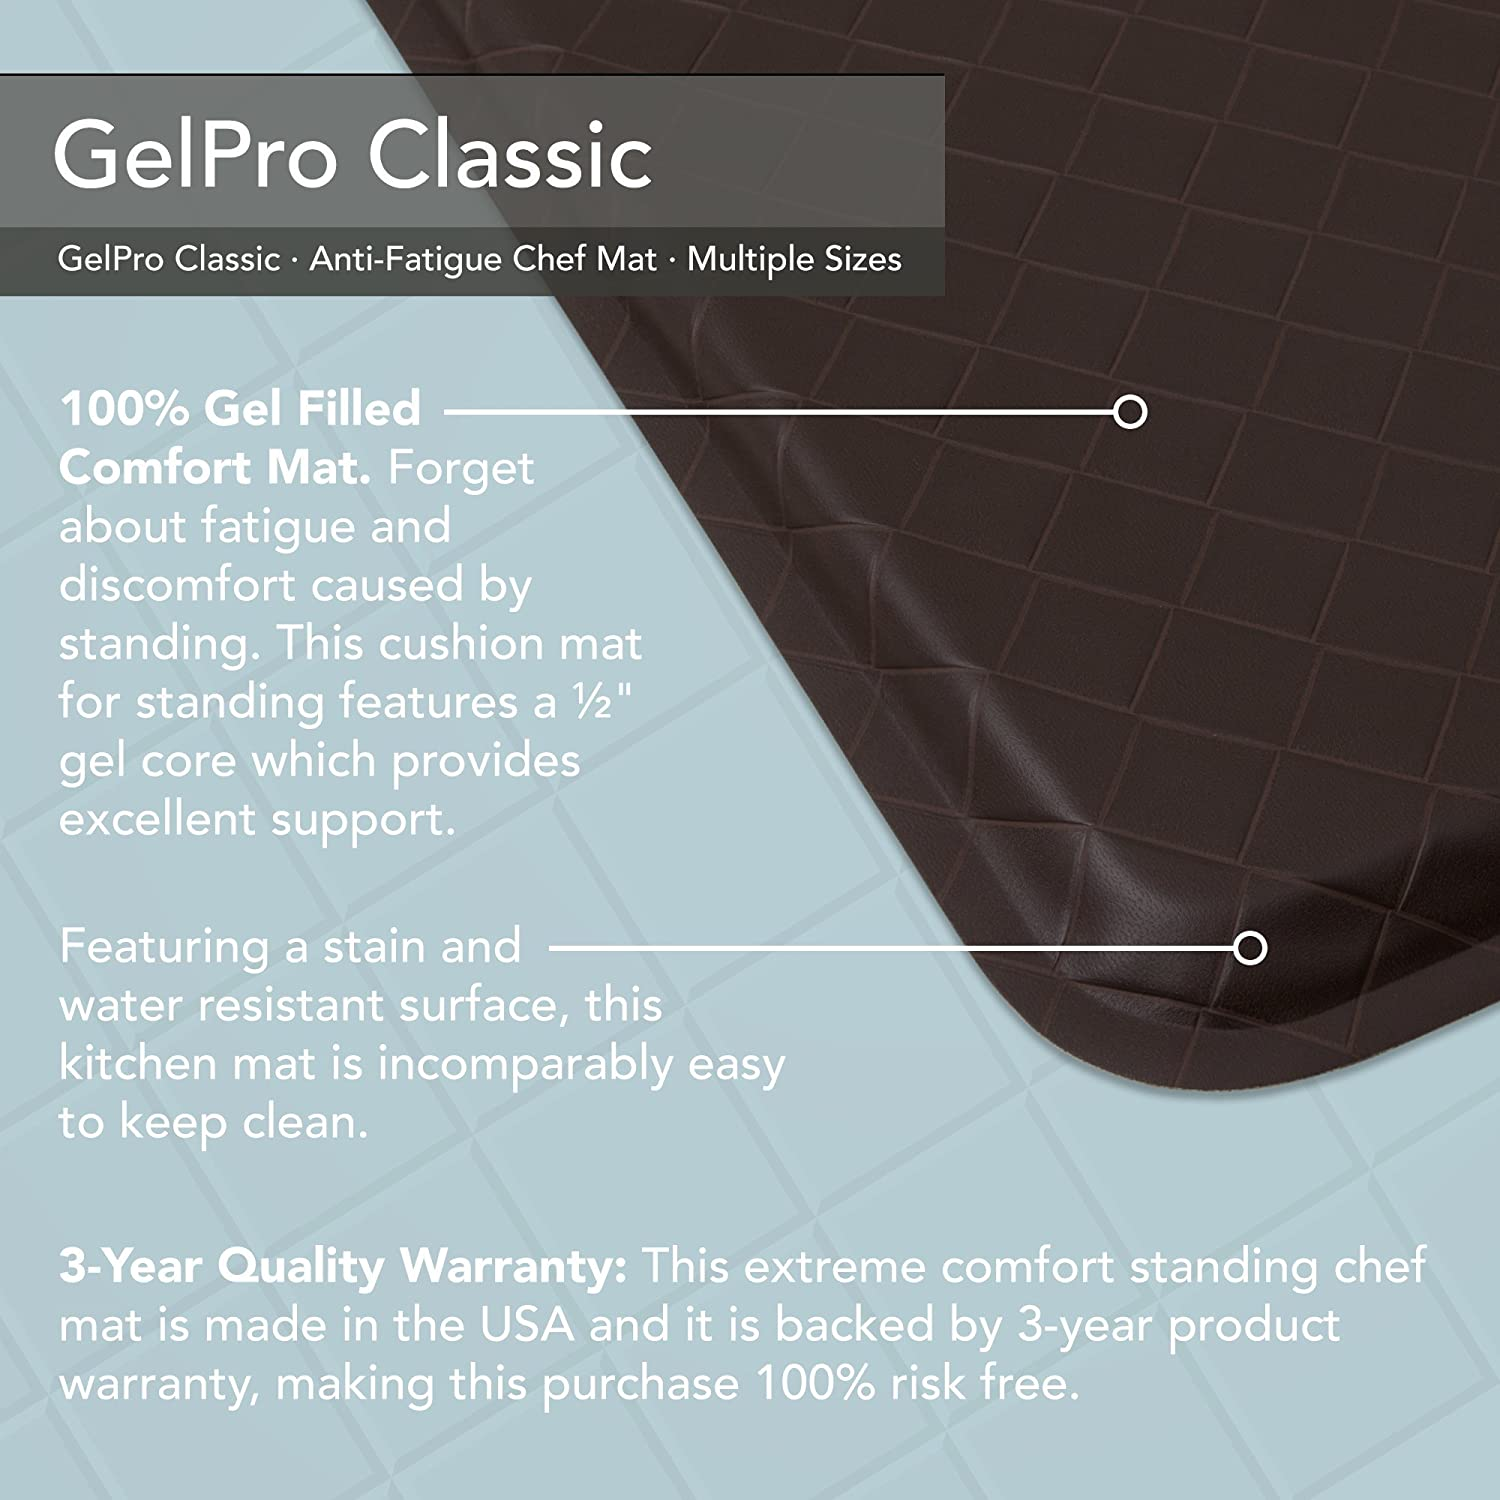 Amazon.com: GelPro Classic Anti-Fatigue Kitchen Comfort Chef Floor ...